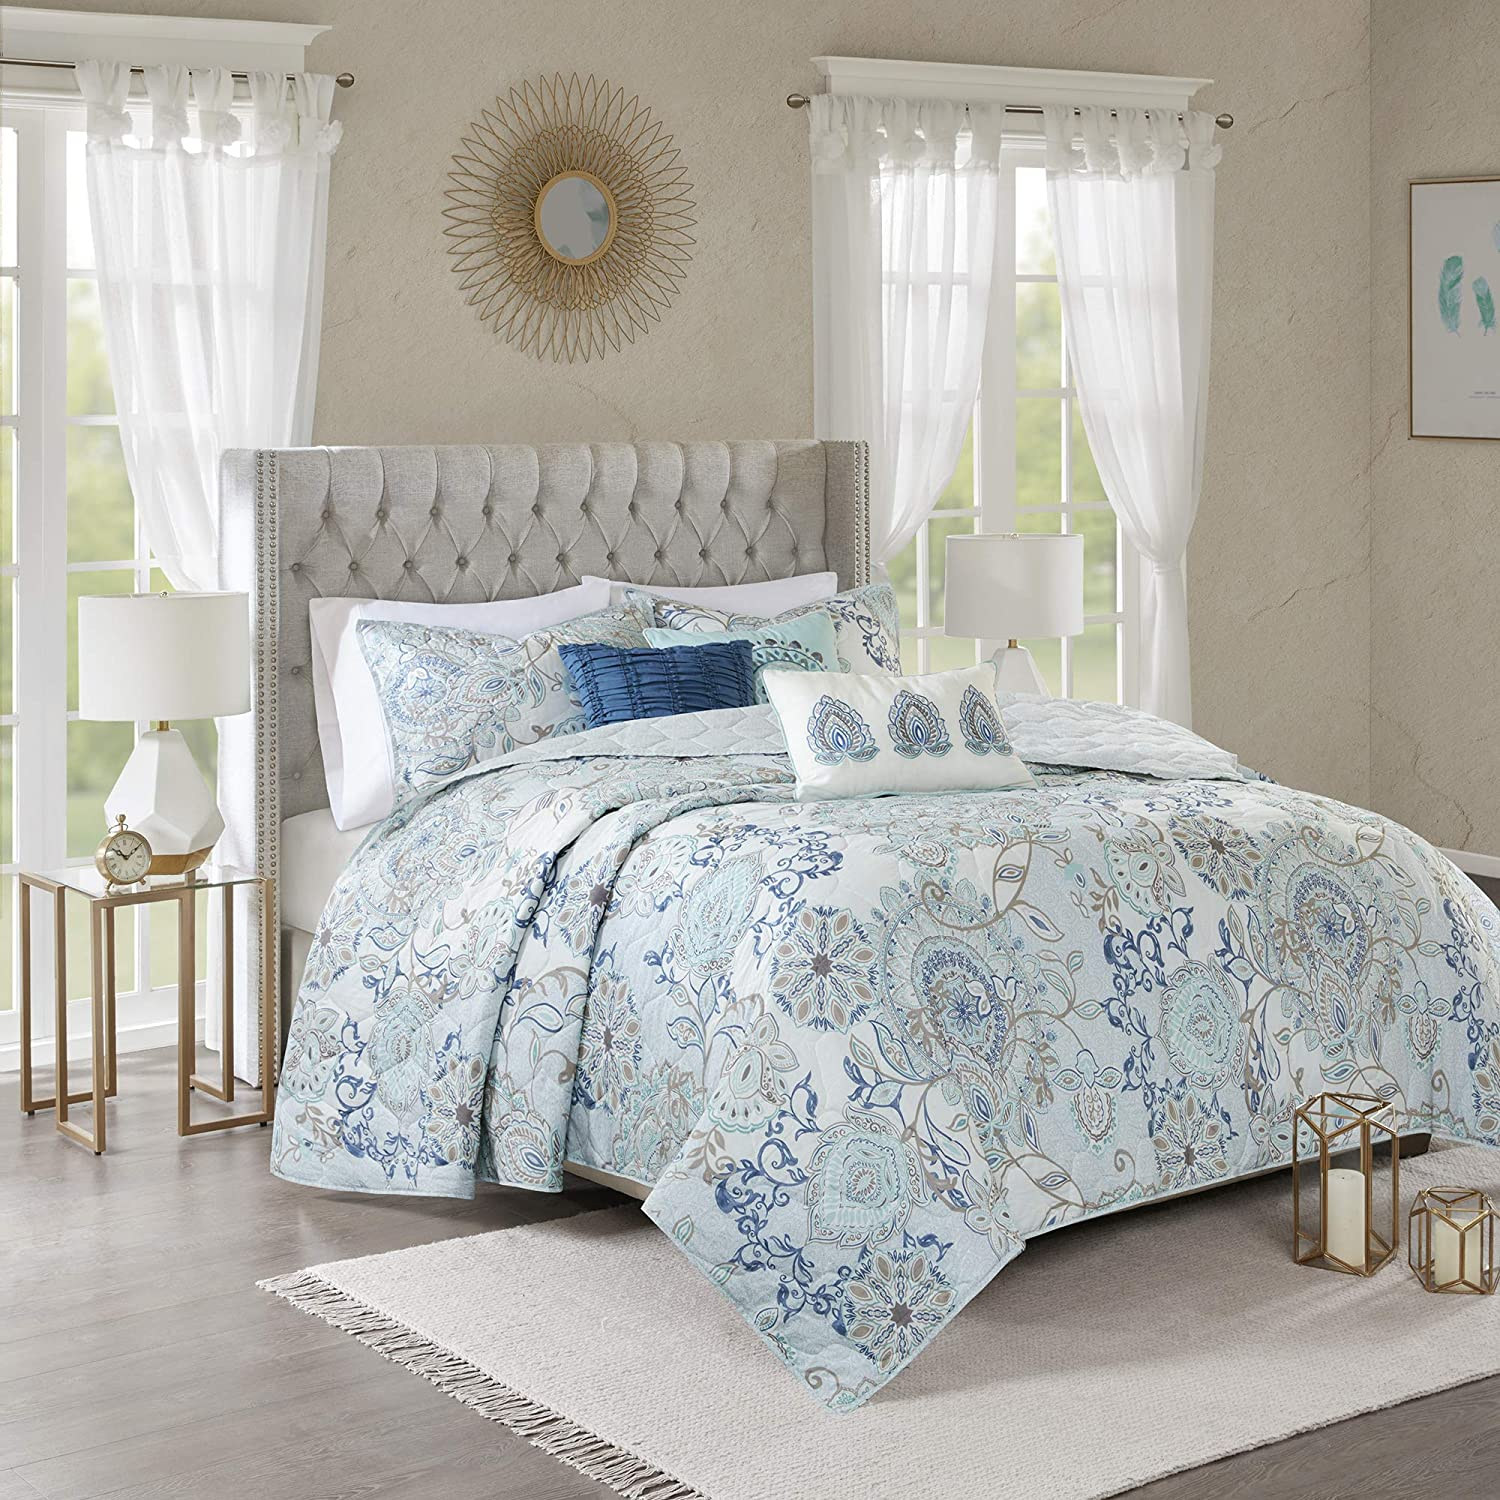 Madison Park Isla Quilt Reversible 100% Cotton Percale Flower Medallion Printed Embroidered Soft Down Alternative Hypoallergenic All Season Coverlet Bedding-Set, Full/Queen(90